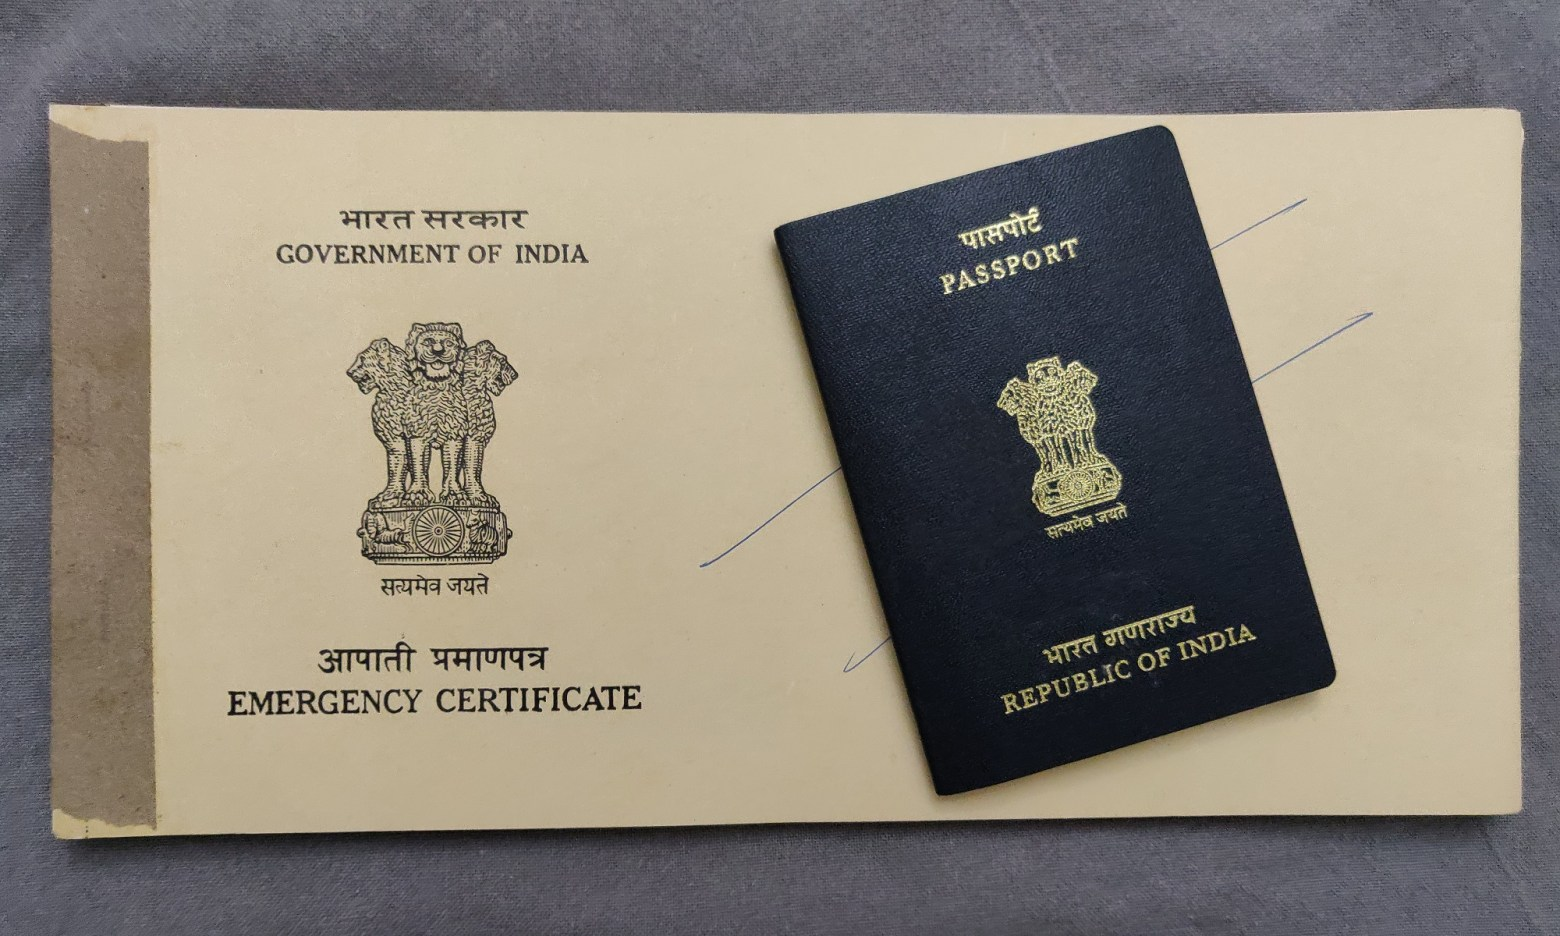 Lost my Indian passport while in Europe